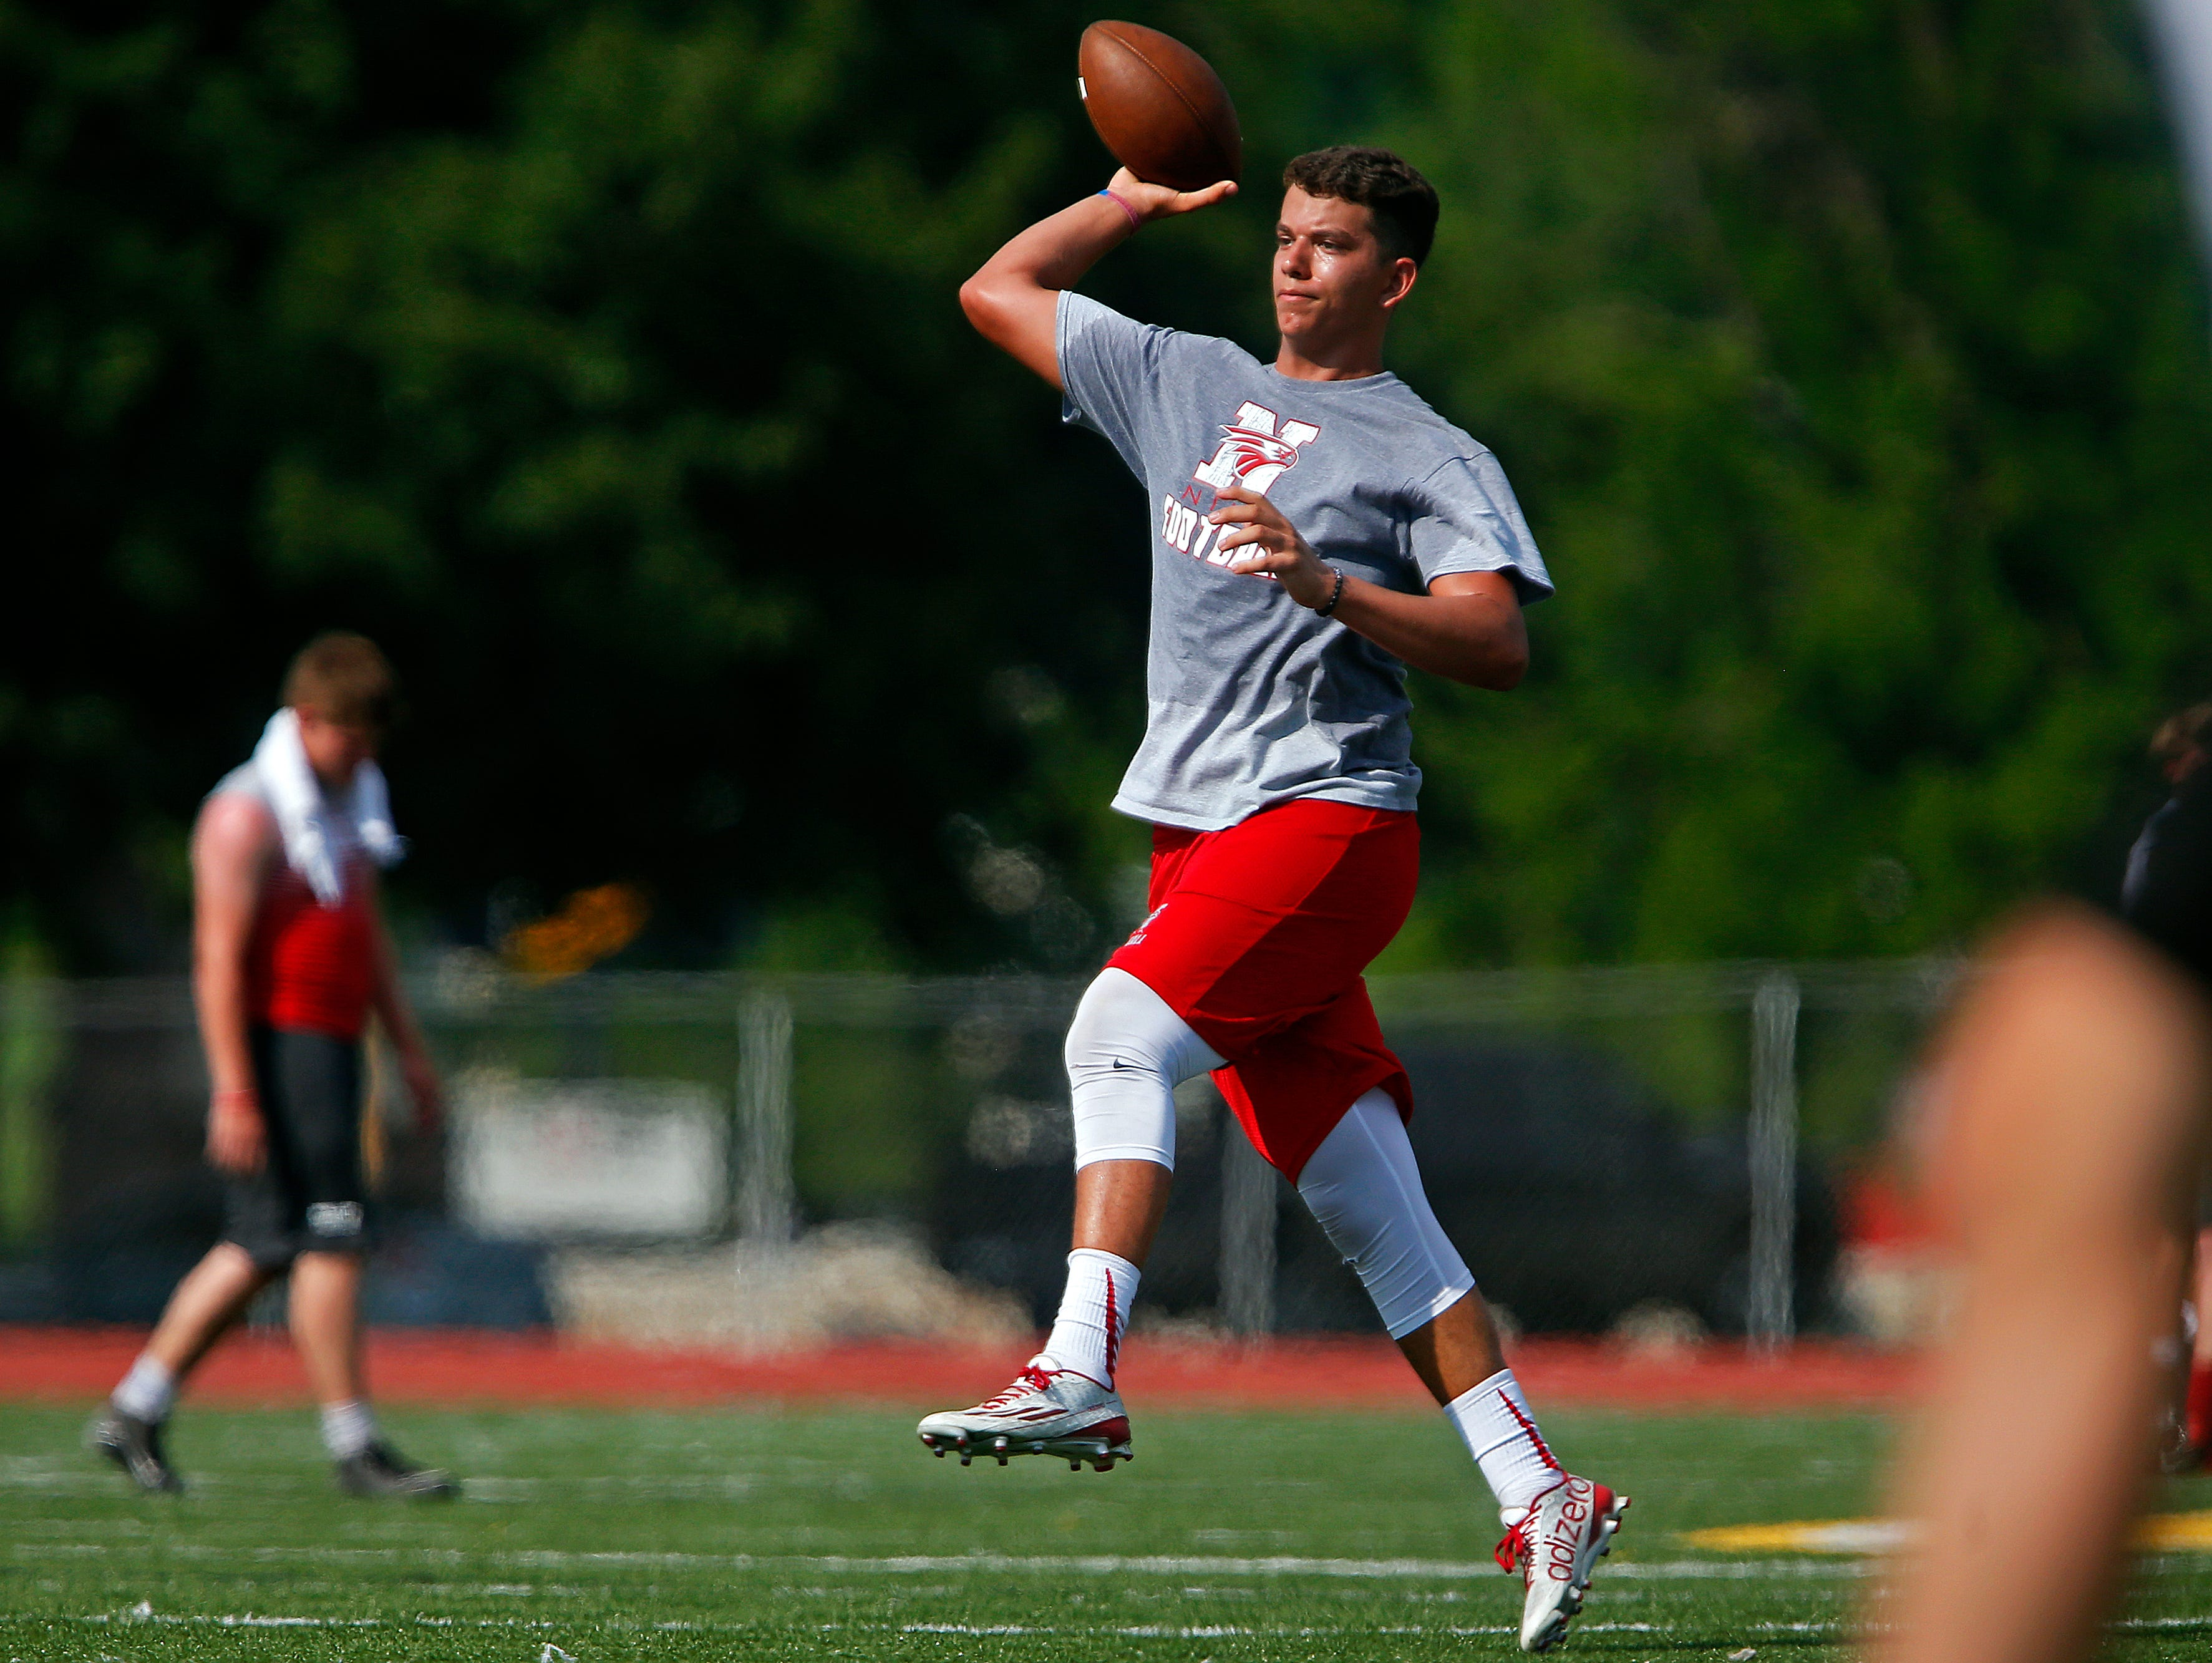 A Nixa High School player throws the ball as the Eagles played West Plains High School during the 2016 Parkview 7 on 7 Tournament held at JFK Stadium in Springfield, Mo. on June 16, 2016.